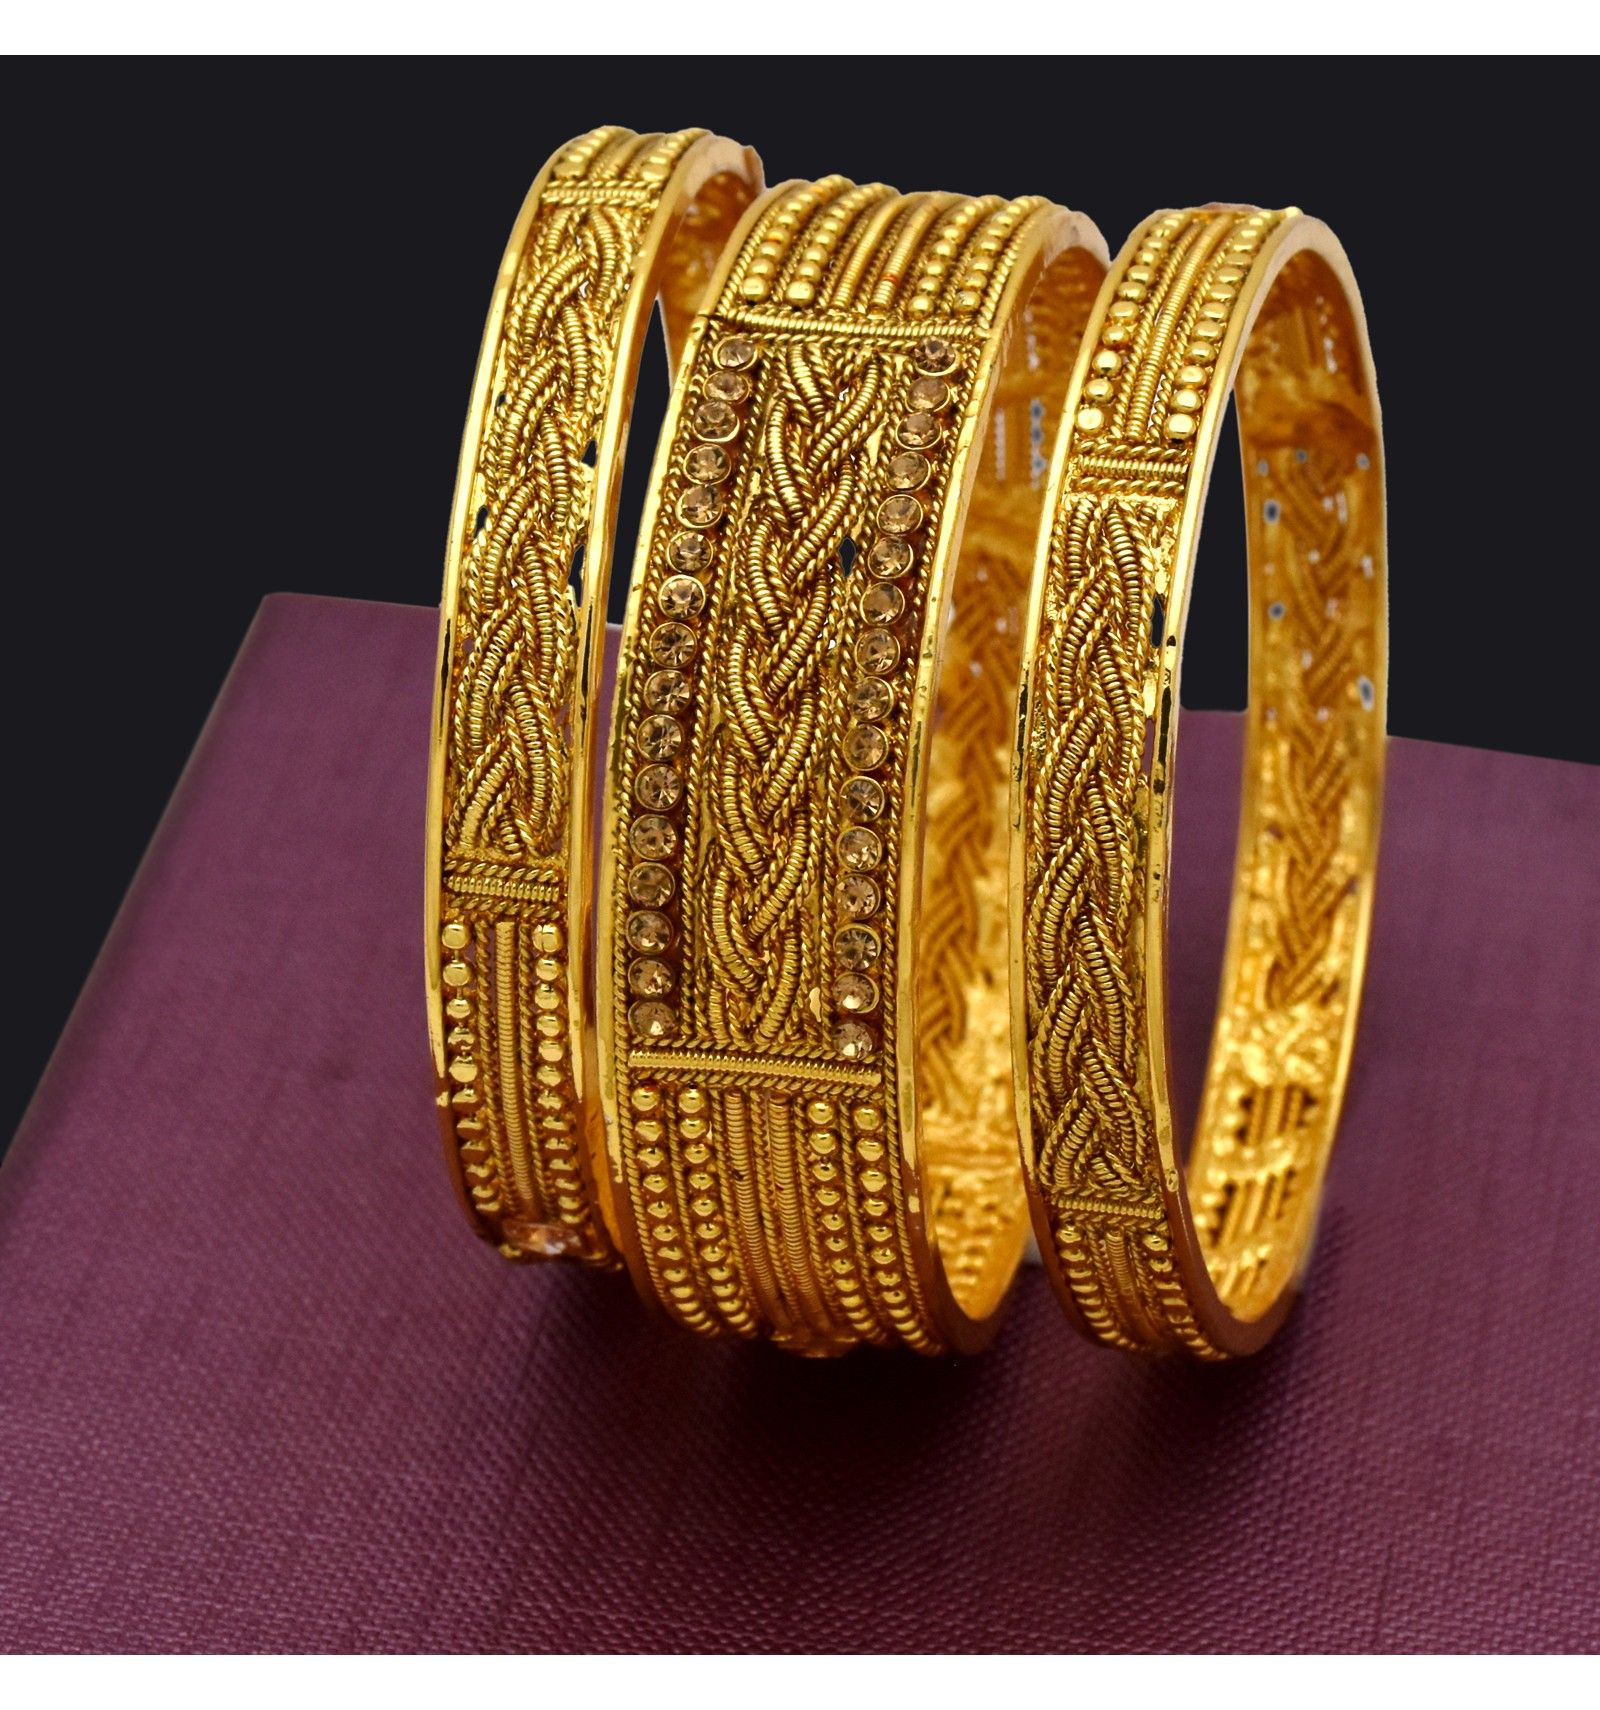 Buy Gold Plated Antique Stone Bangles Set Online Kollam Supreme & Gold Plated Antique Stone Bangles Set   Antique Jewellery ...